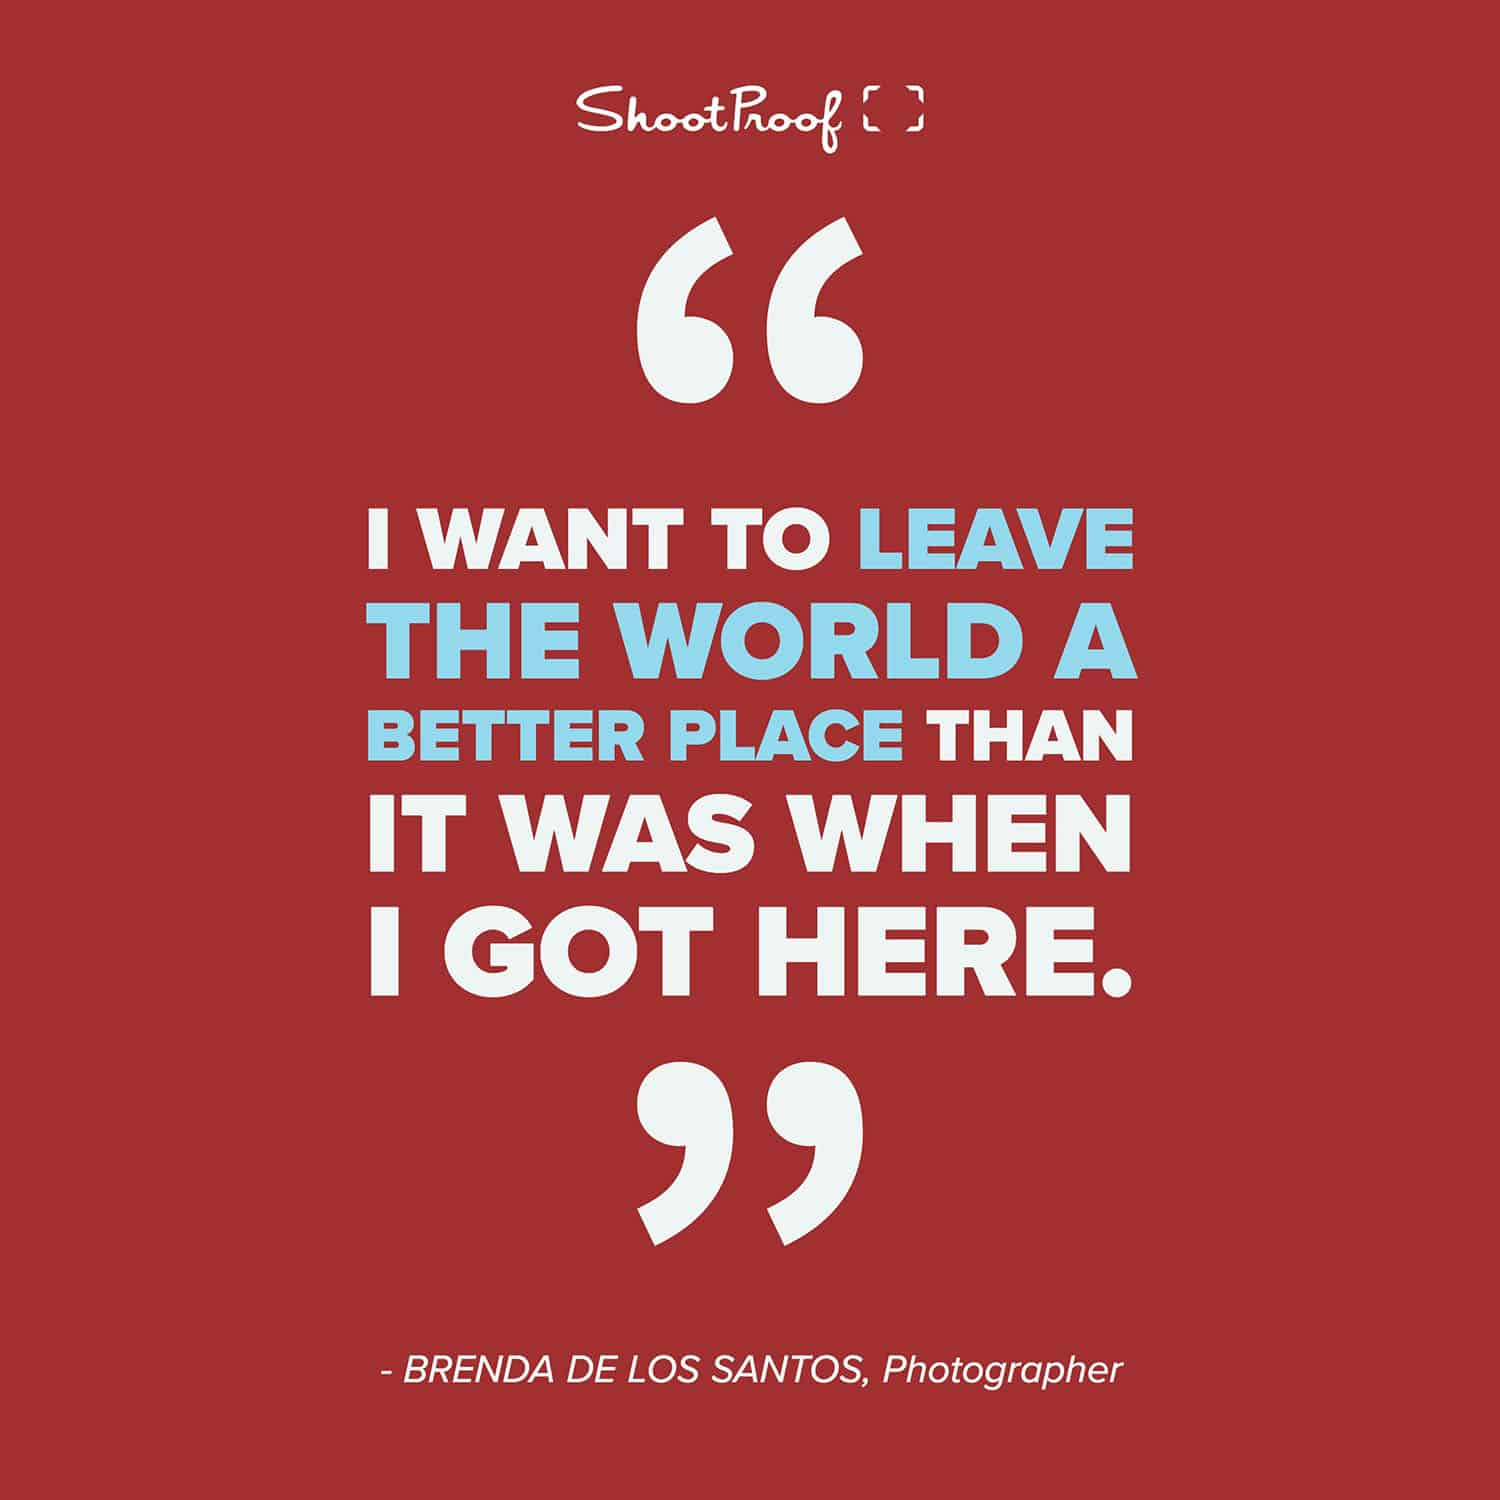 I want to leave the world a better place than it was when I got here. - Brenda De Los Santos